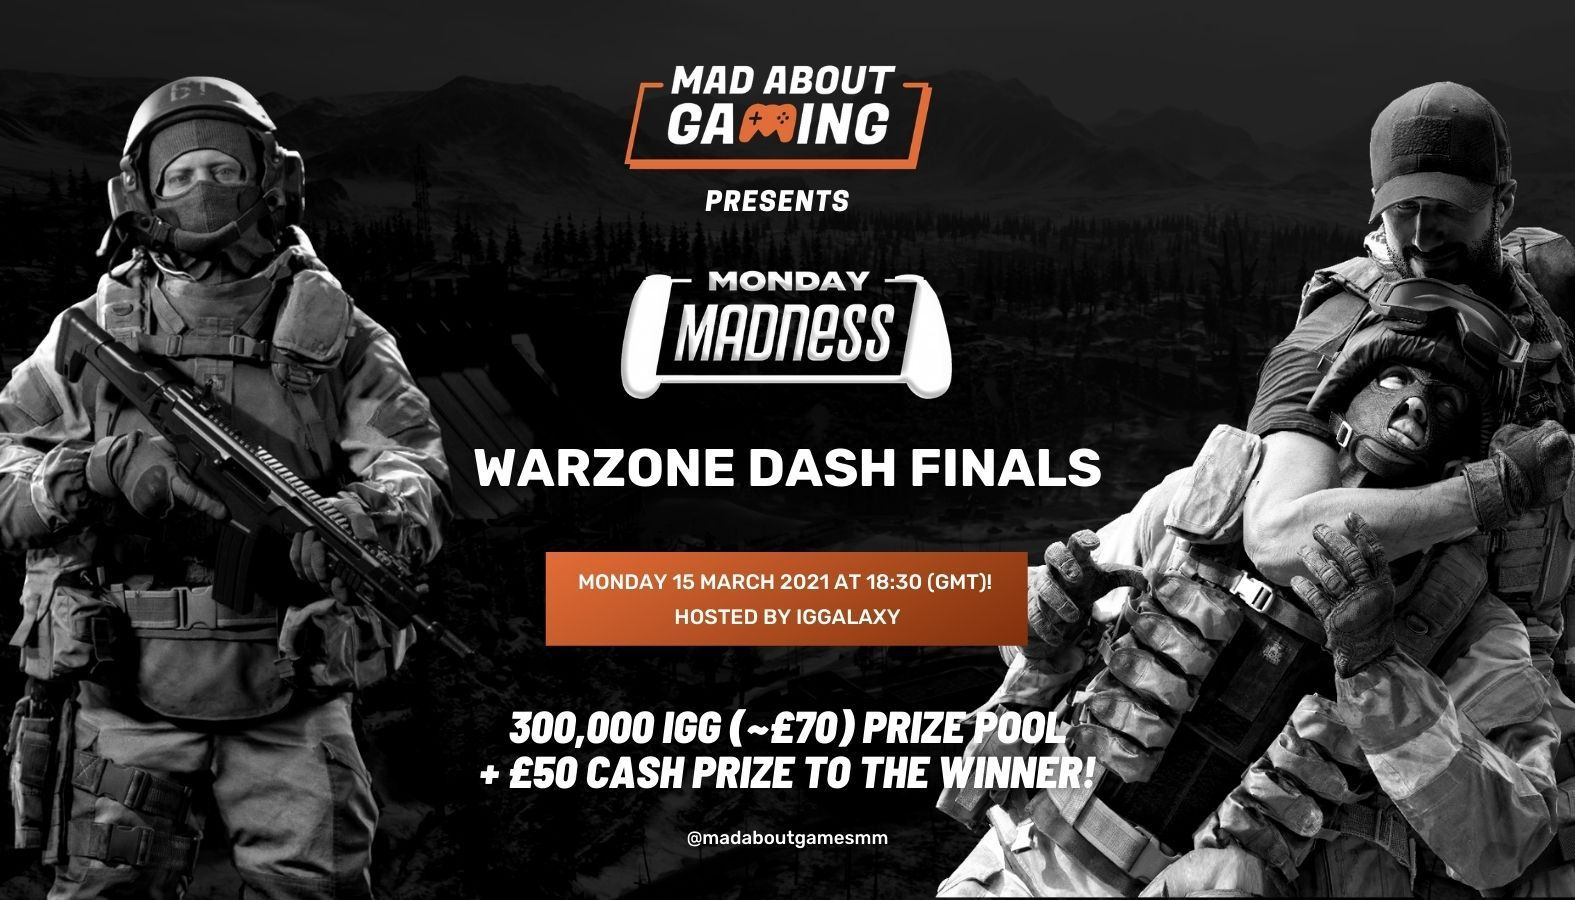 Mixtape Madness' Mad About Gaming Warzone Dash Final, powered by IGGalaxy!